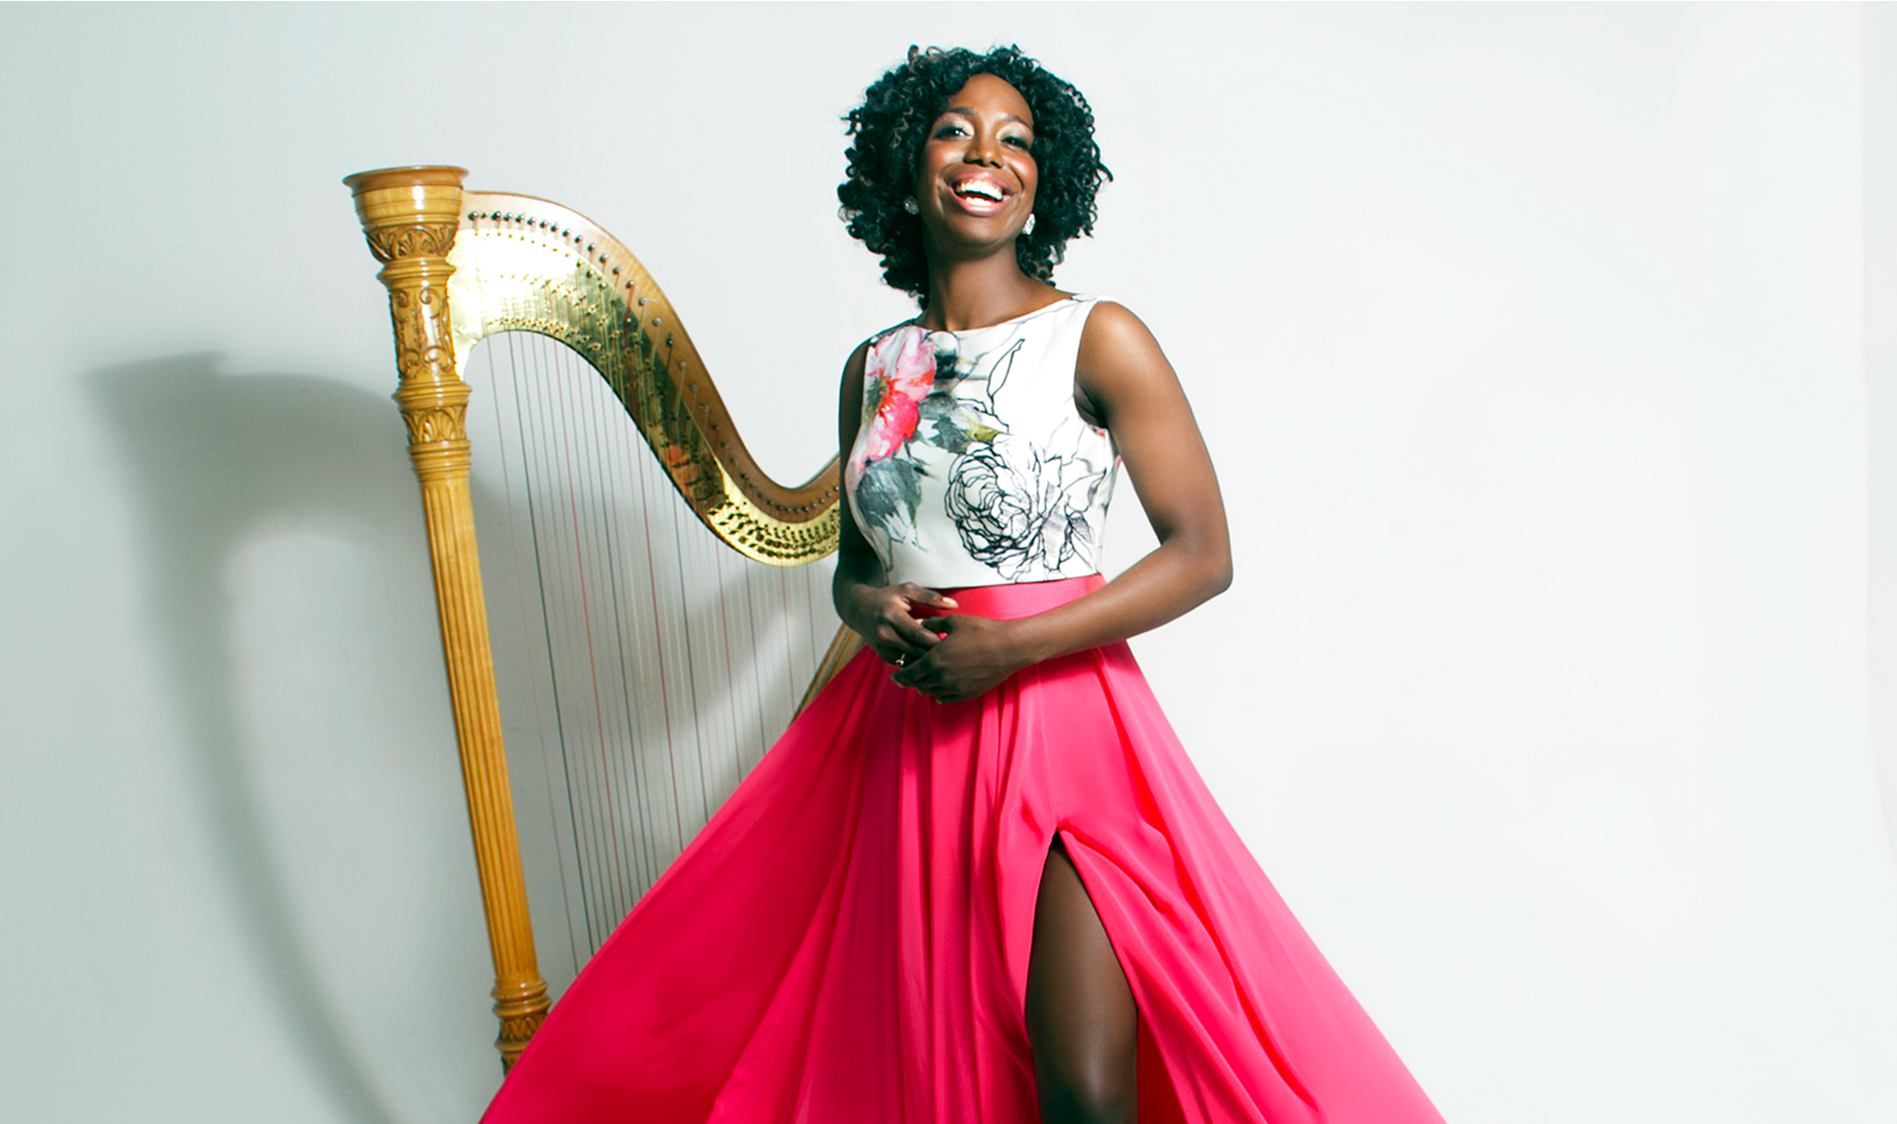 Harpist Brandee Younger to Appear in Springfield, MA 2.2.17